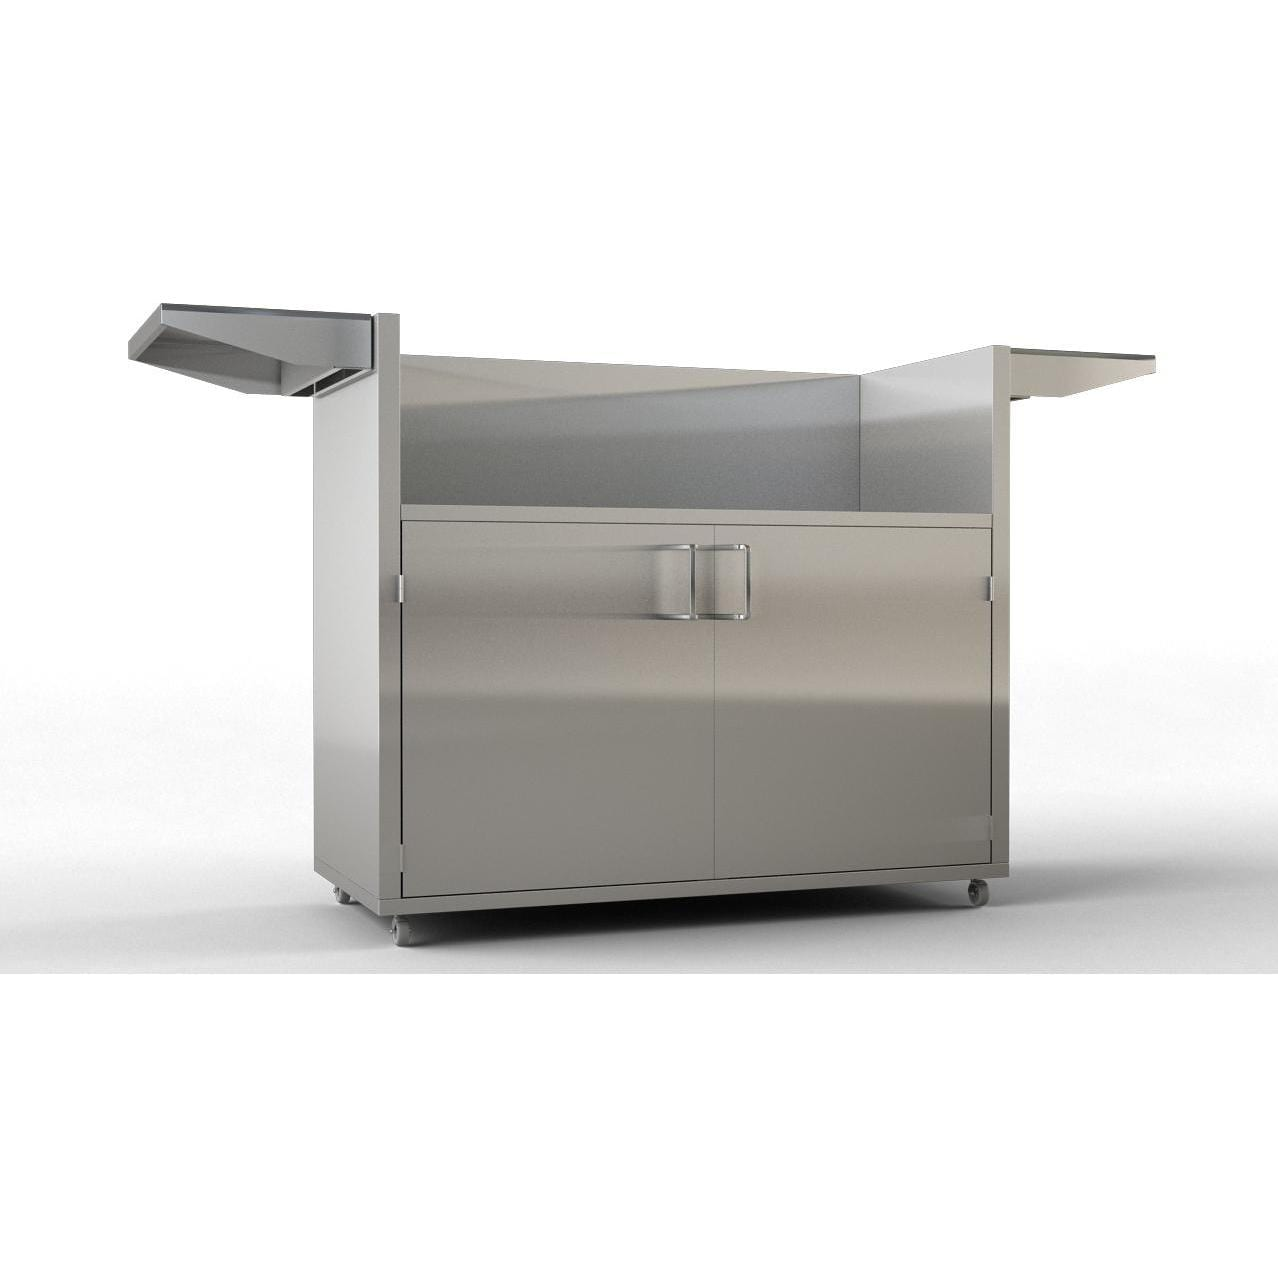 RCS Stainless Steel 30-Inch Grill Cart